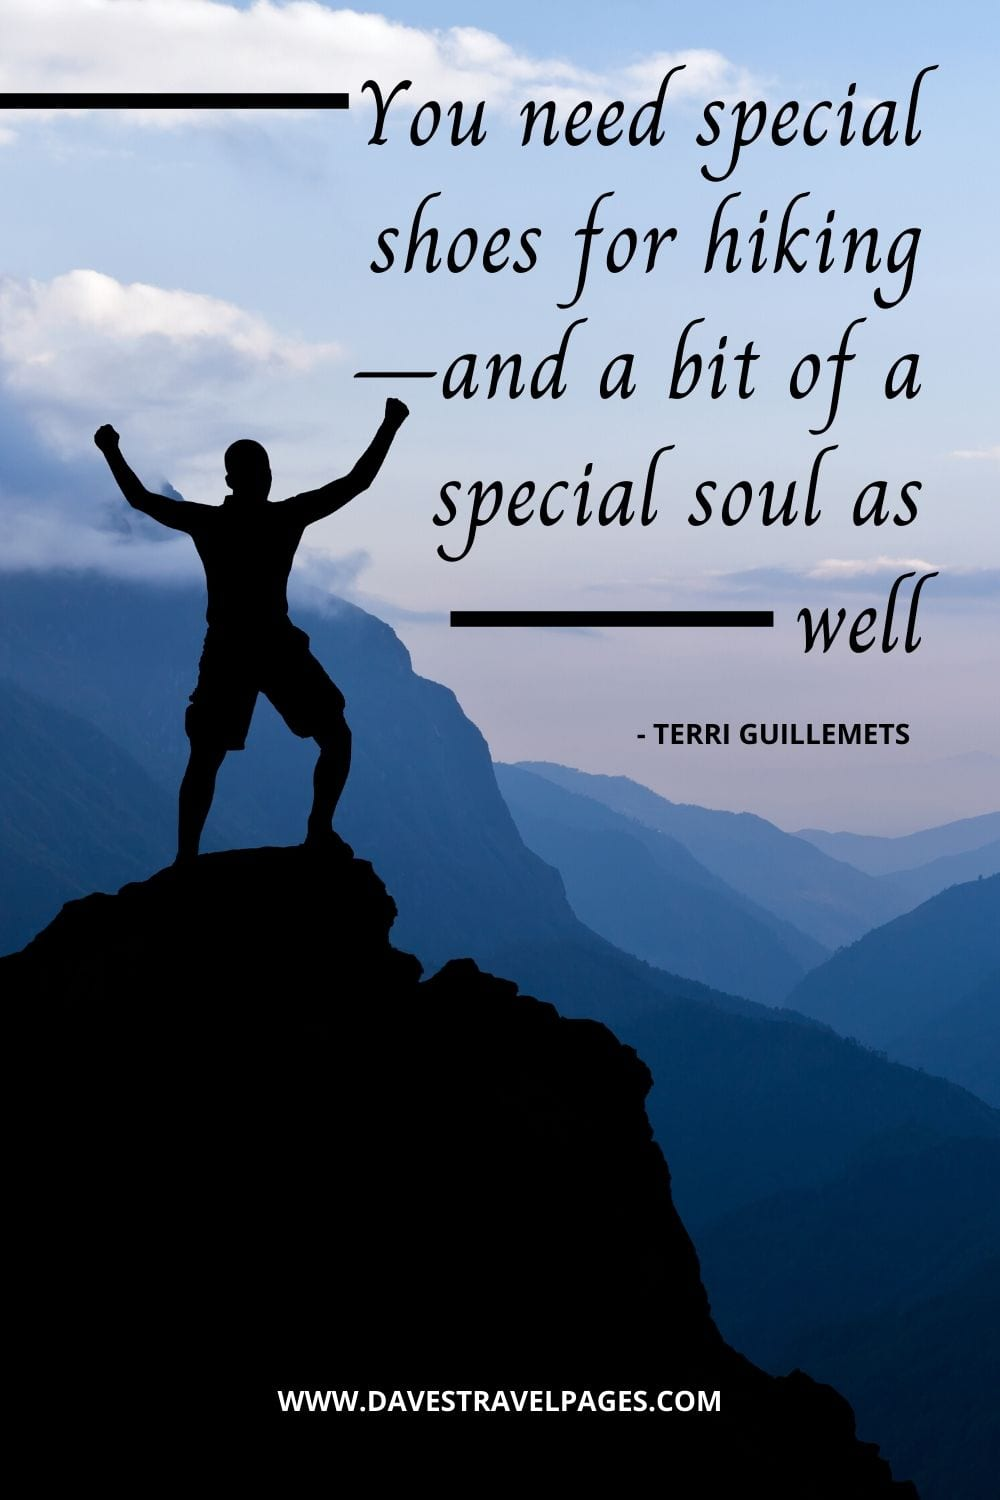 Inspiring quotes outdoor adventure: You need special shoes for hiking—and a bit of a special soul as well - Terri Guillemets